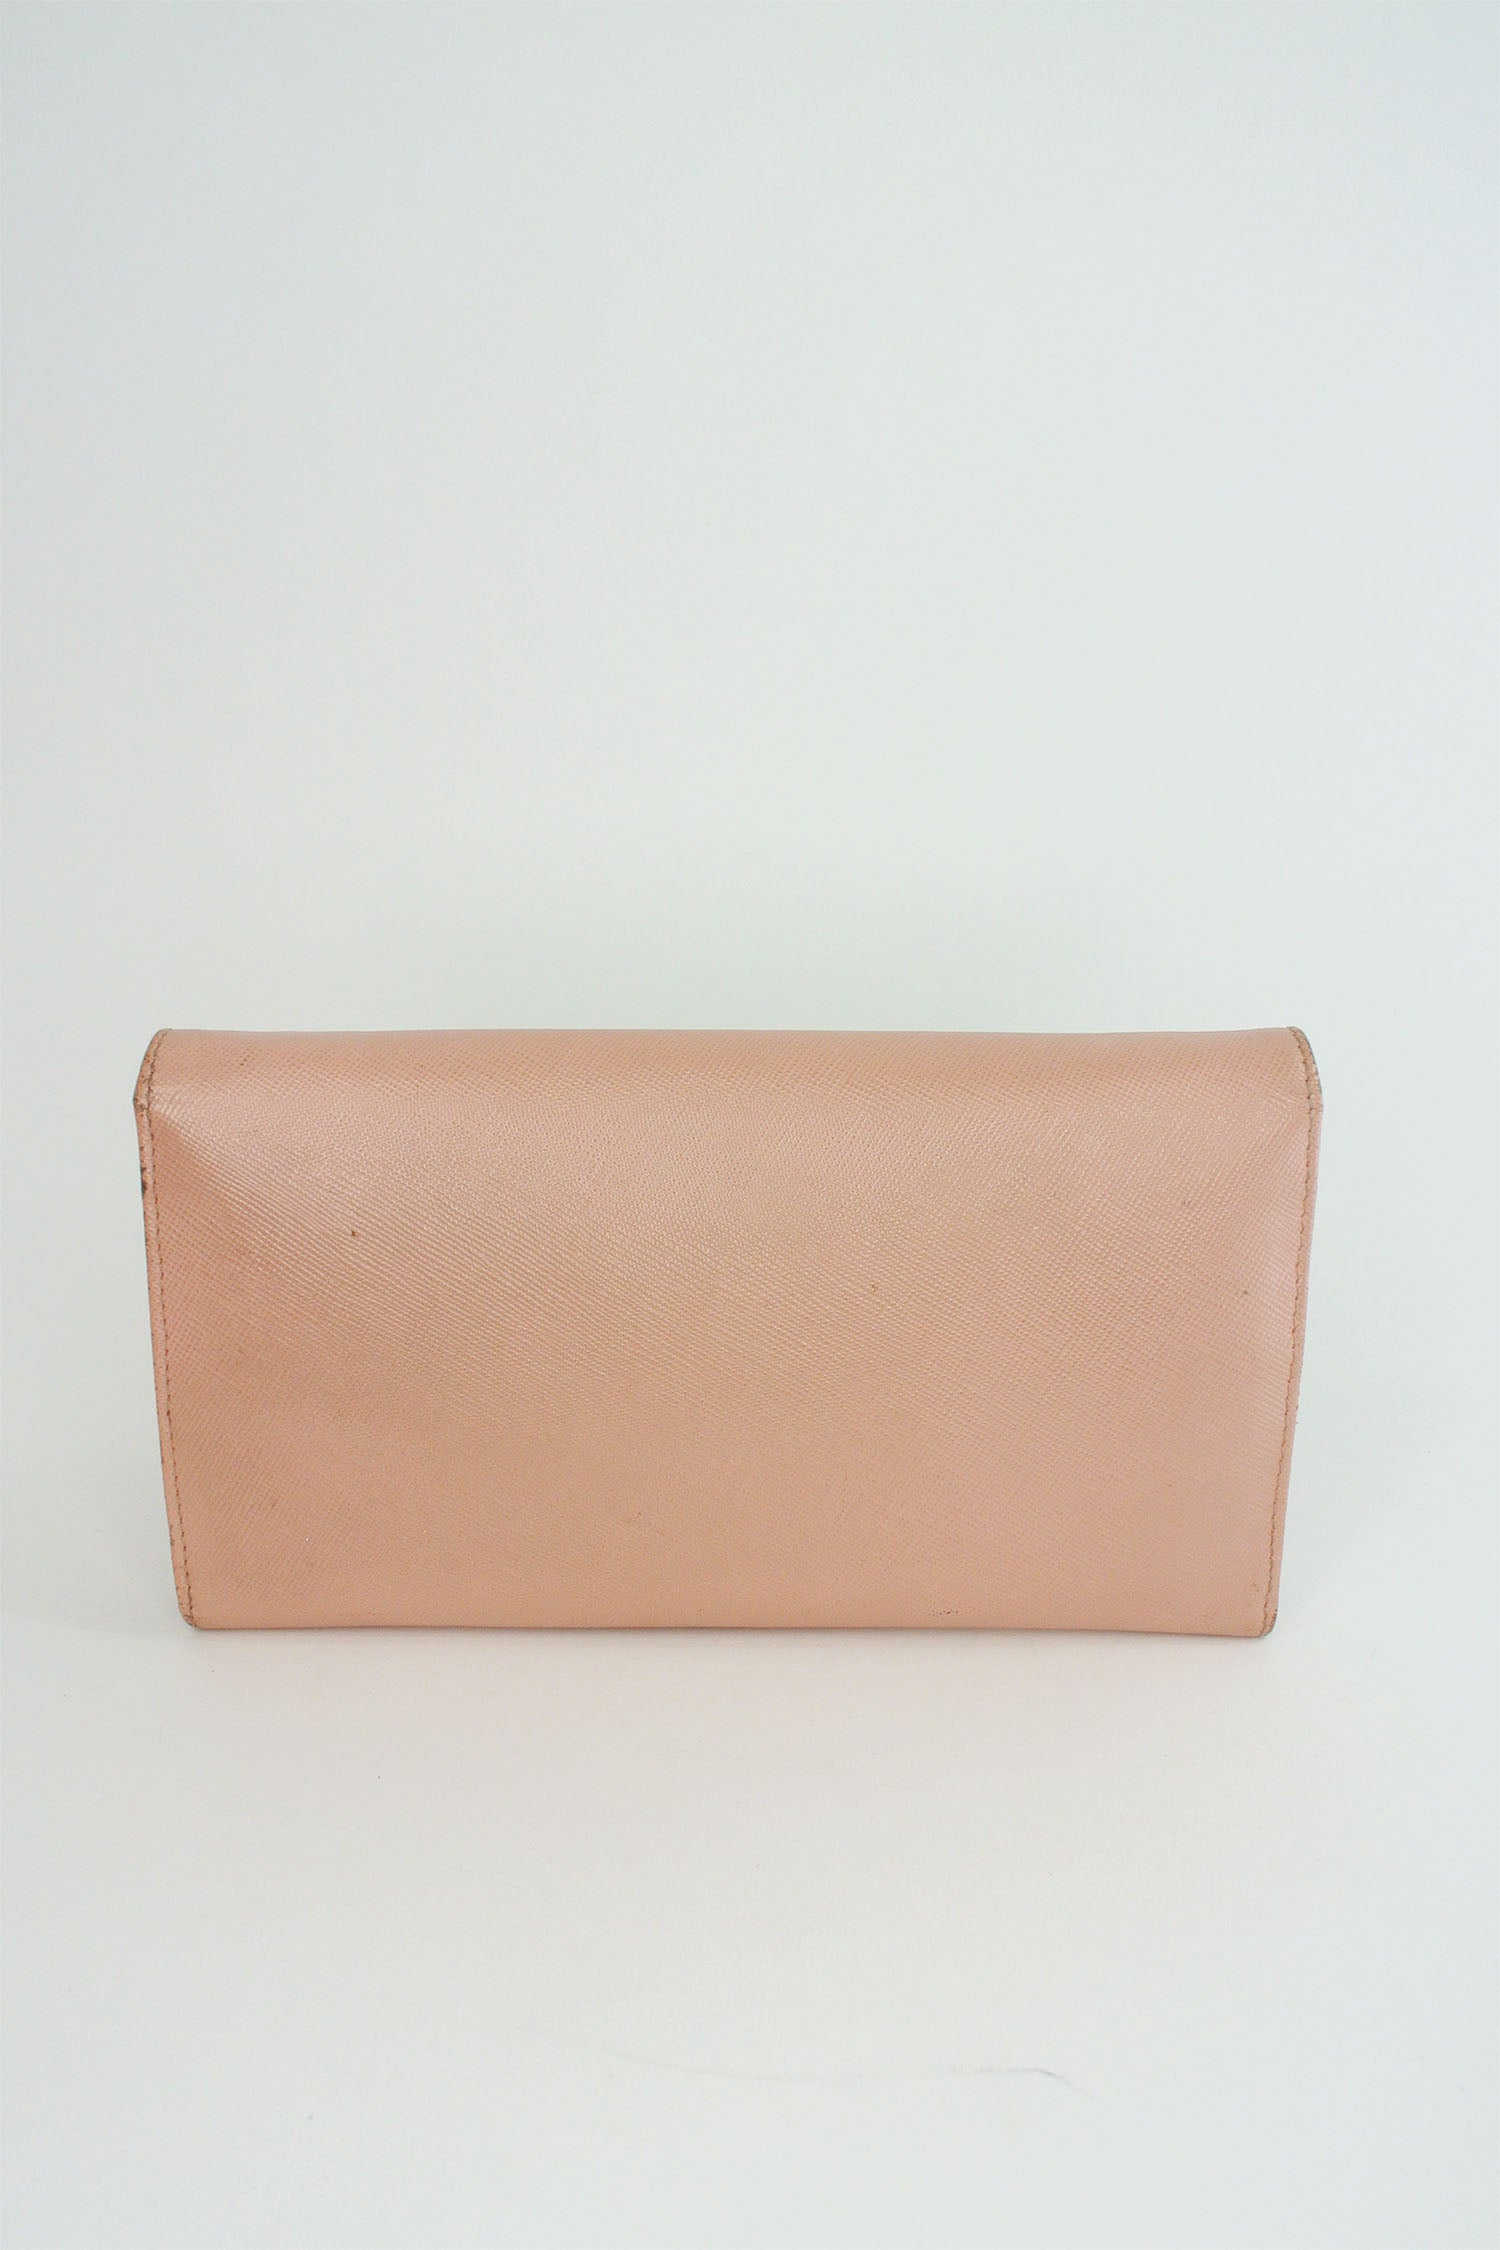 Prada Pink Saffiano Metal Oro Wallet on Chain